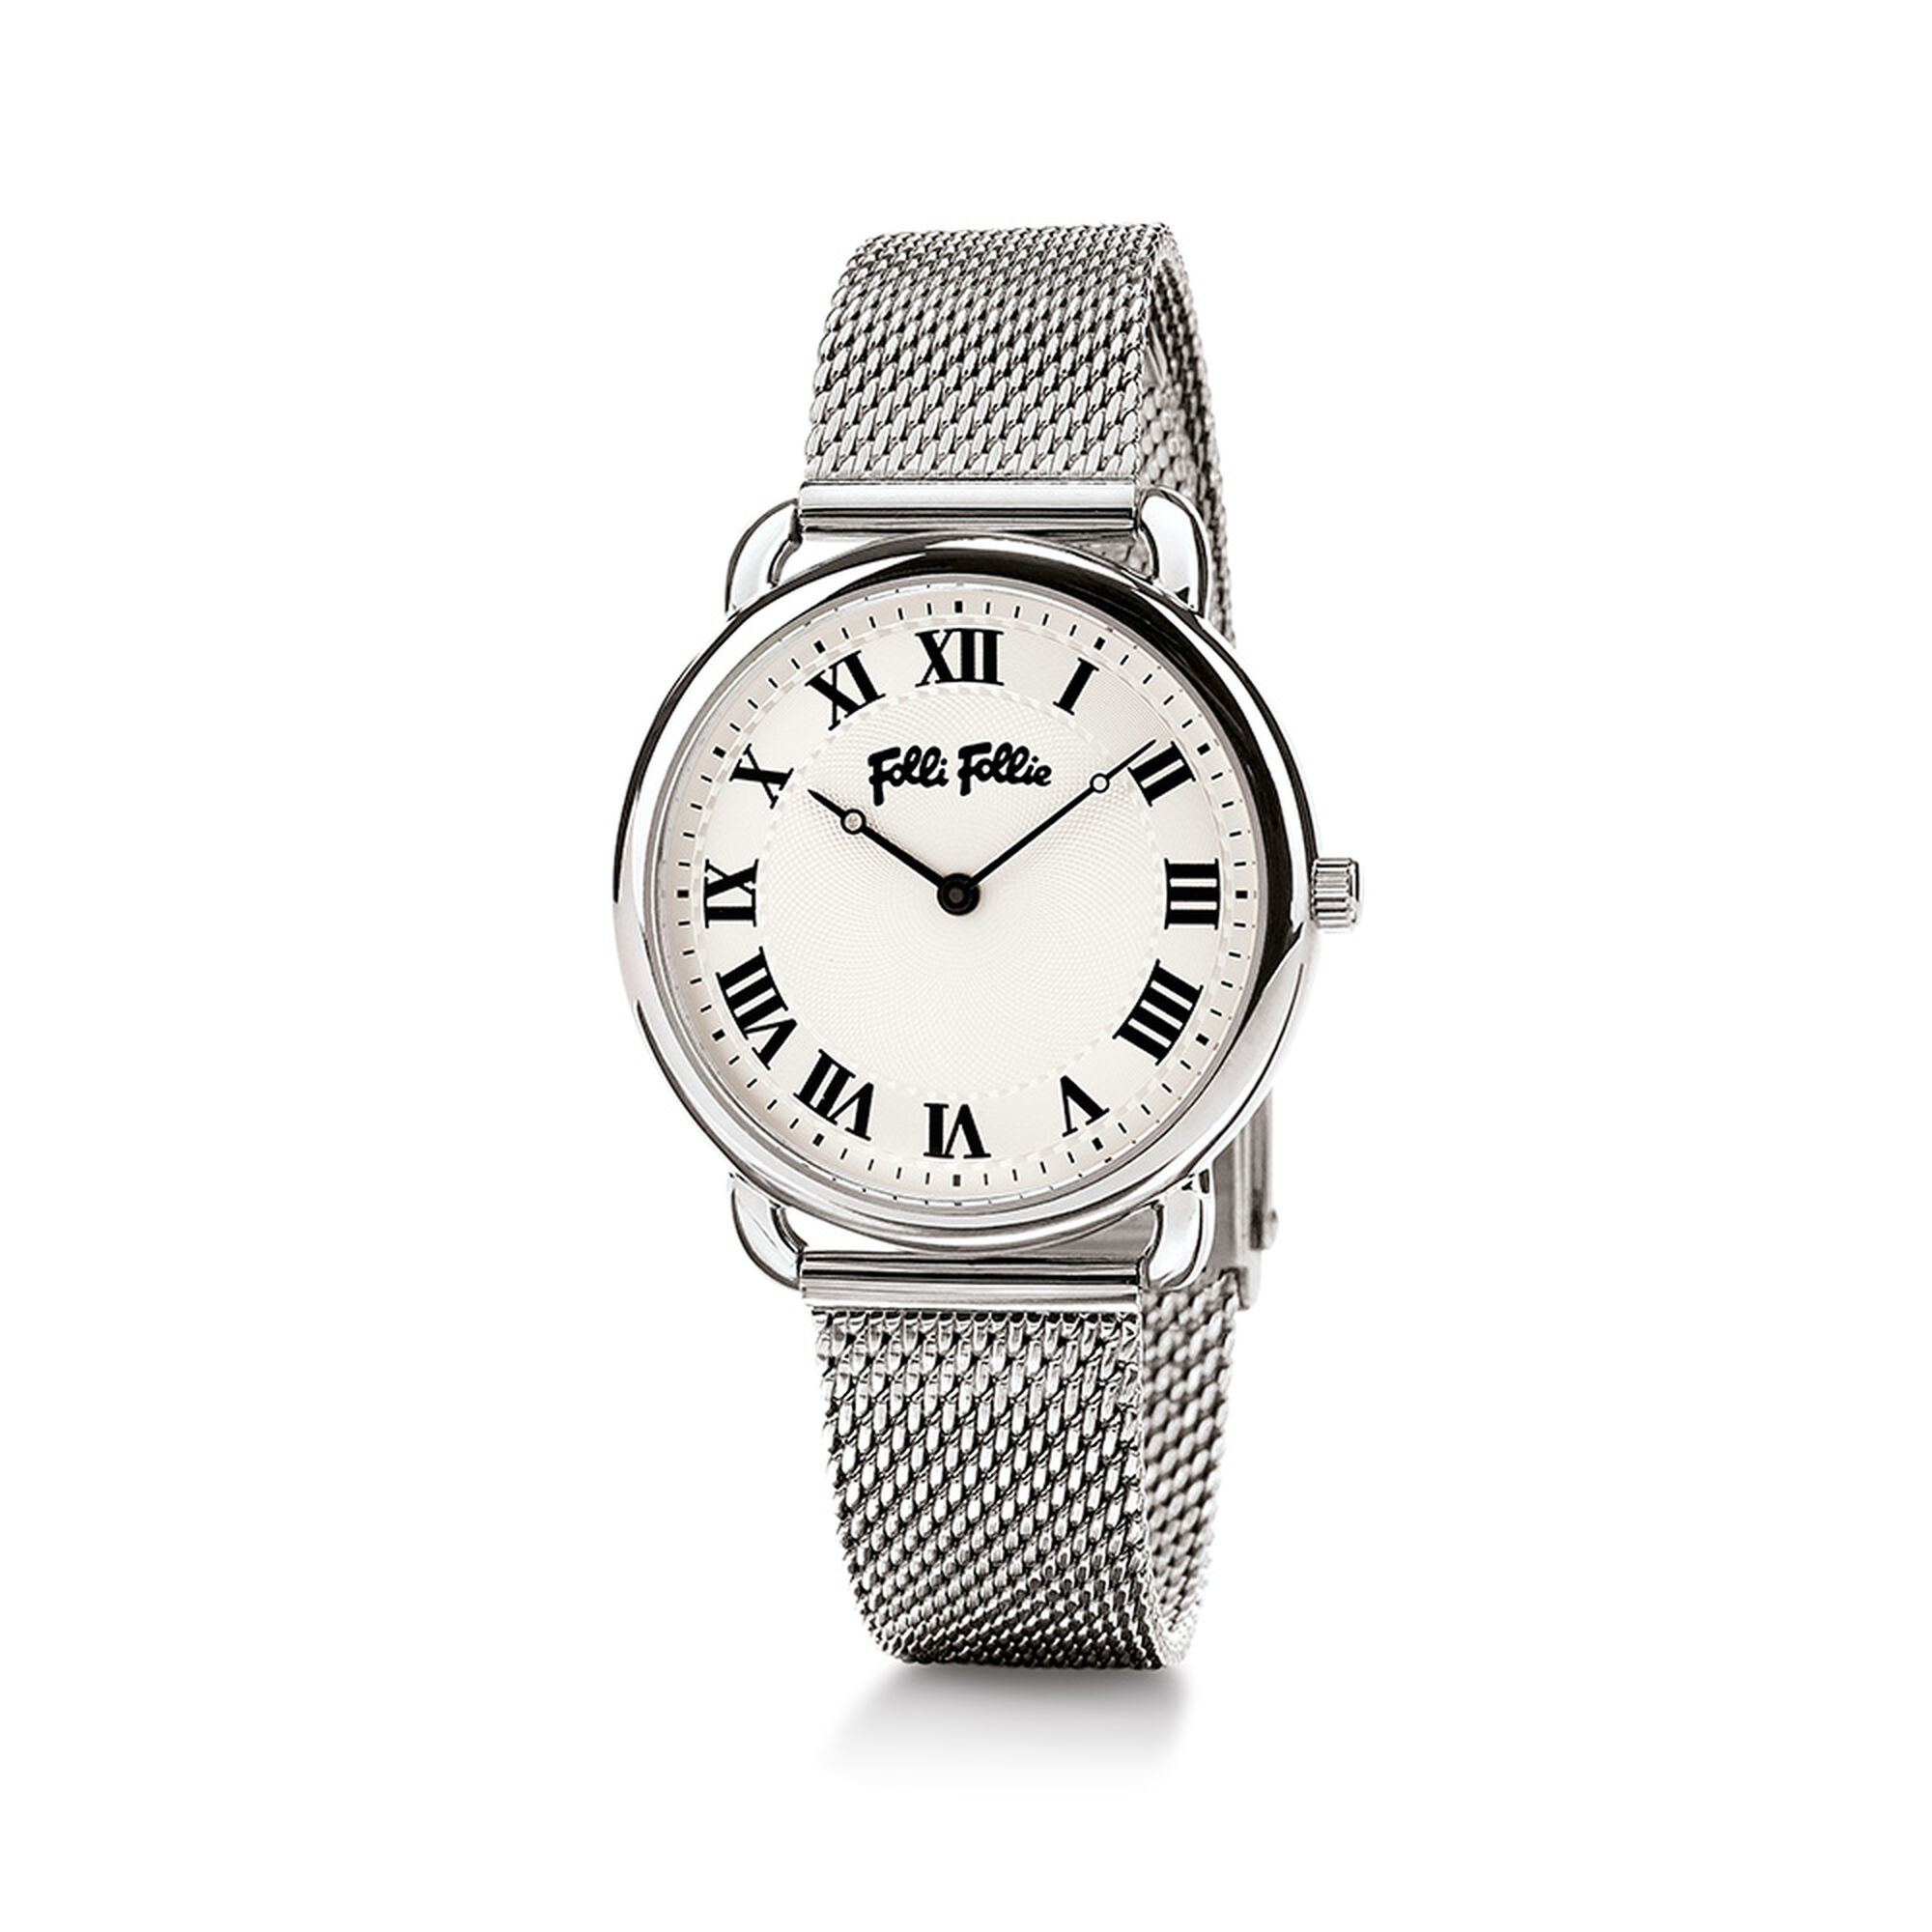 silver two bracelet ladies stainless jbw watch watches tone twotone dial diamond steel mondrian